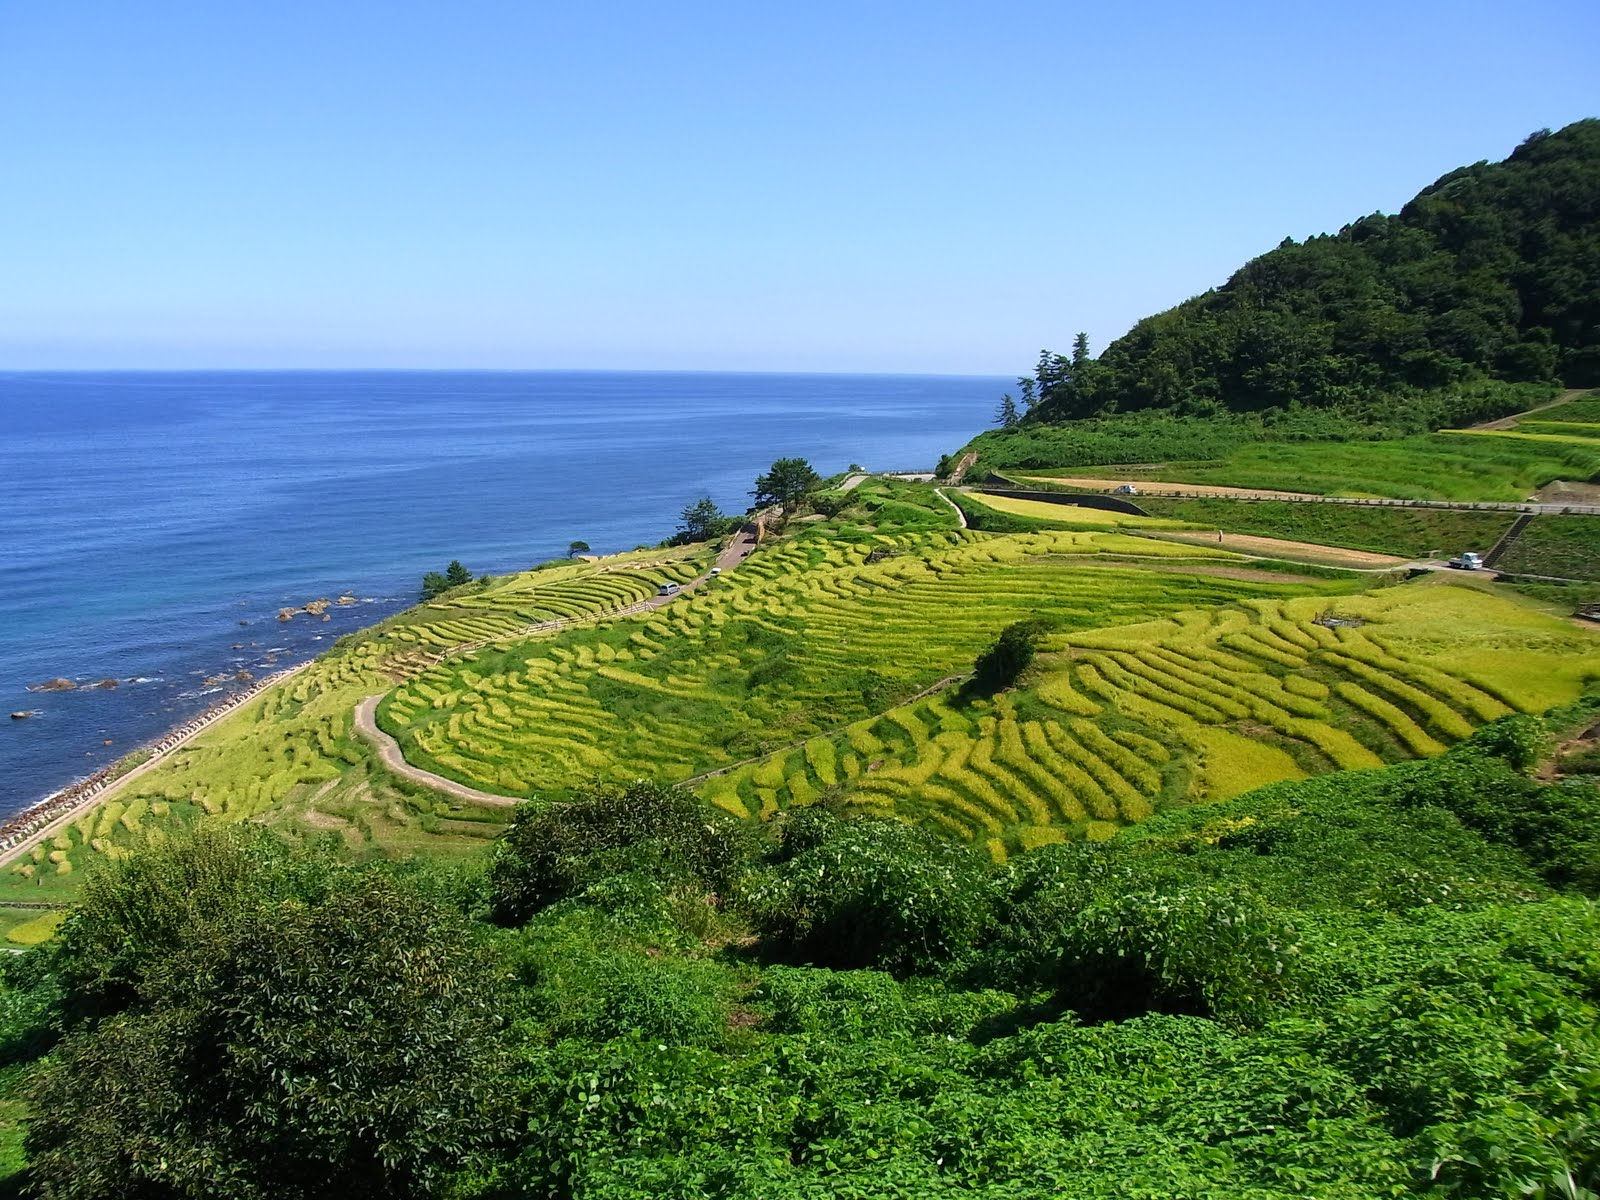 Noto Japan  city pictures gallery : ... north coast of noto hanto noto hanto is very hilly with few large flat